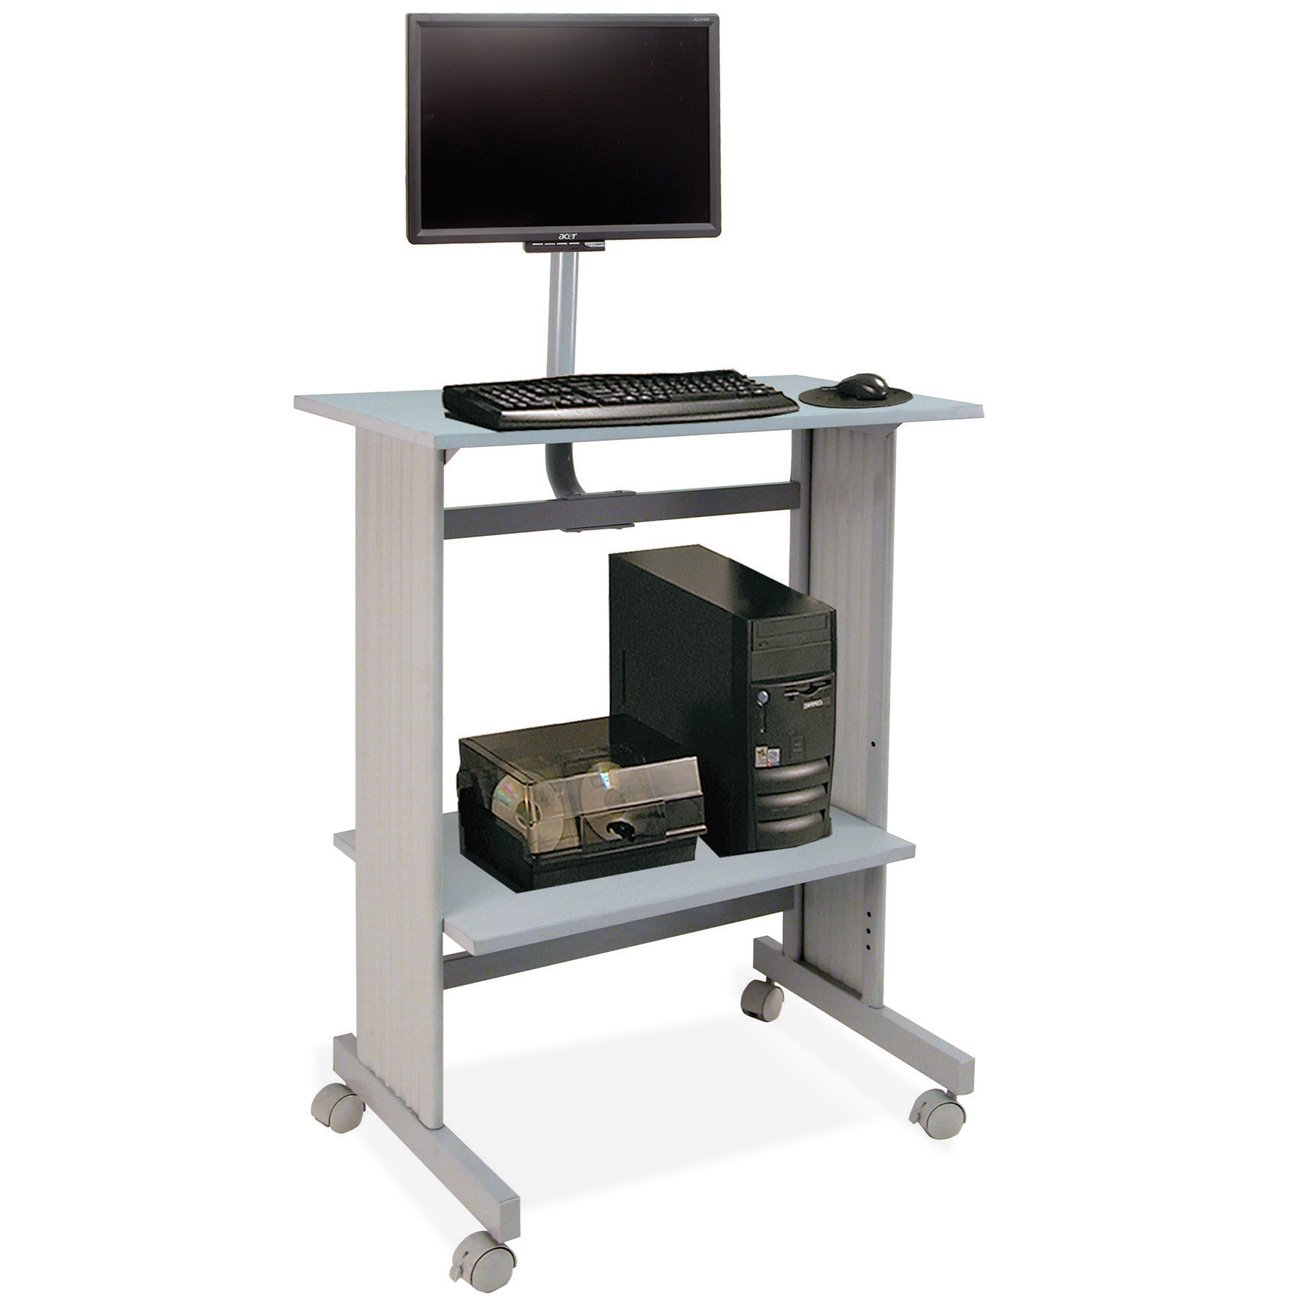 Best stand up workstations on amazon welcome to dad shopper for Best workstation table